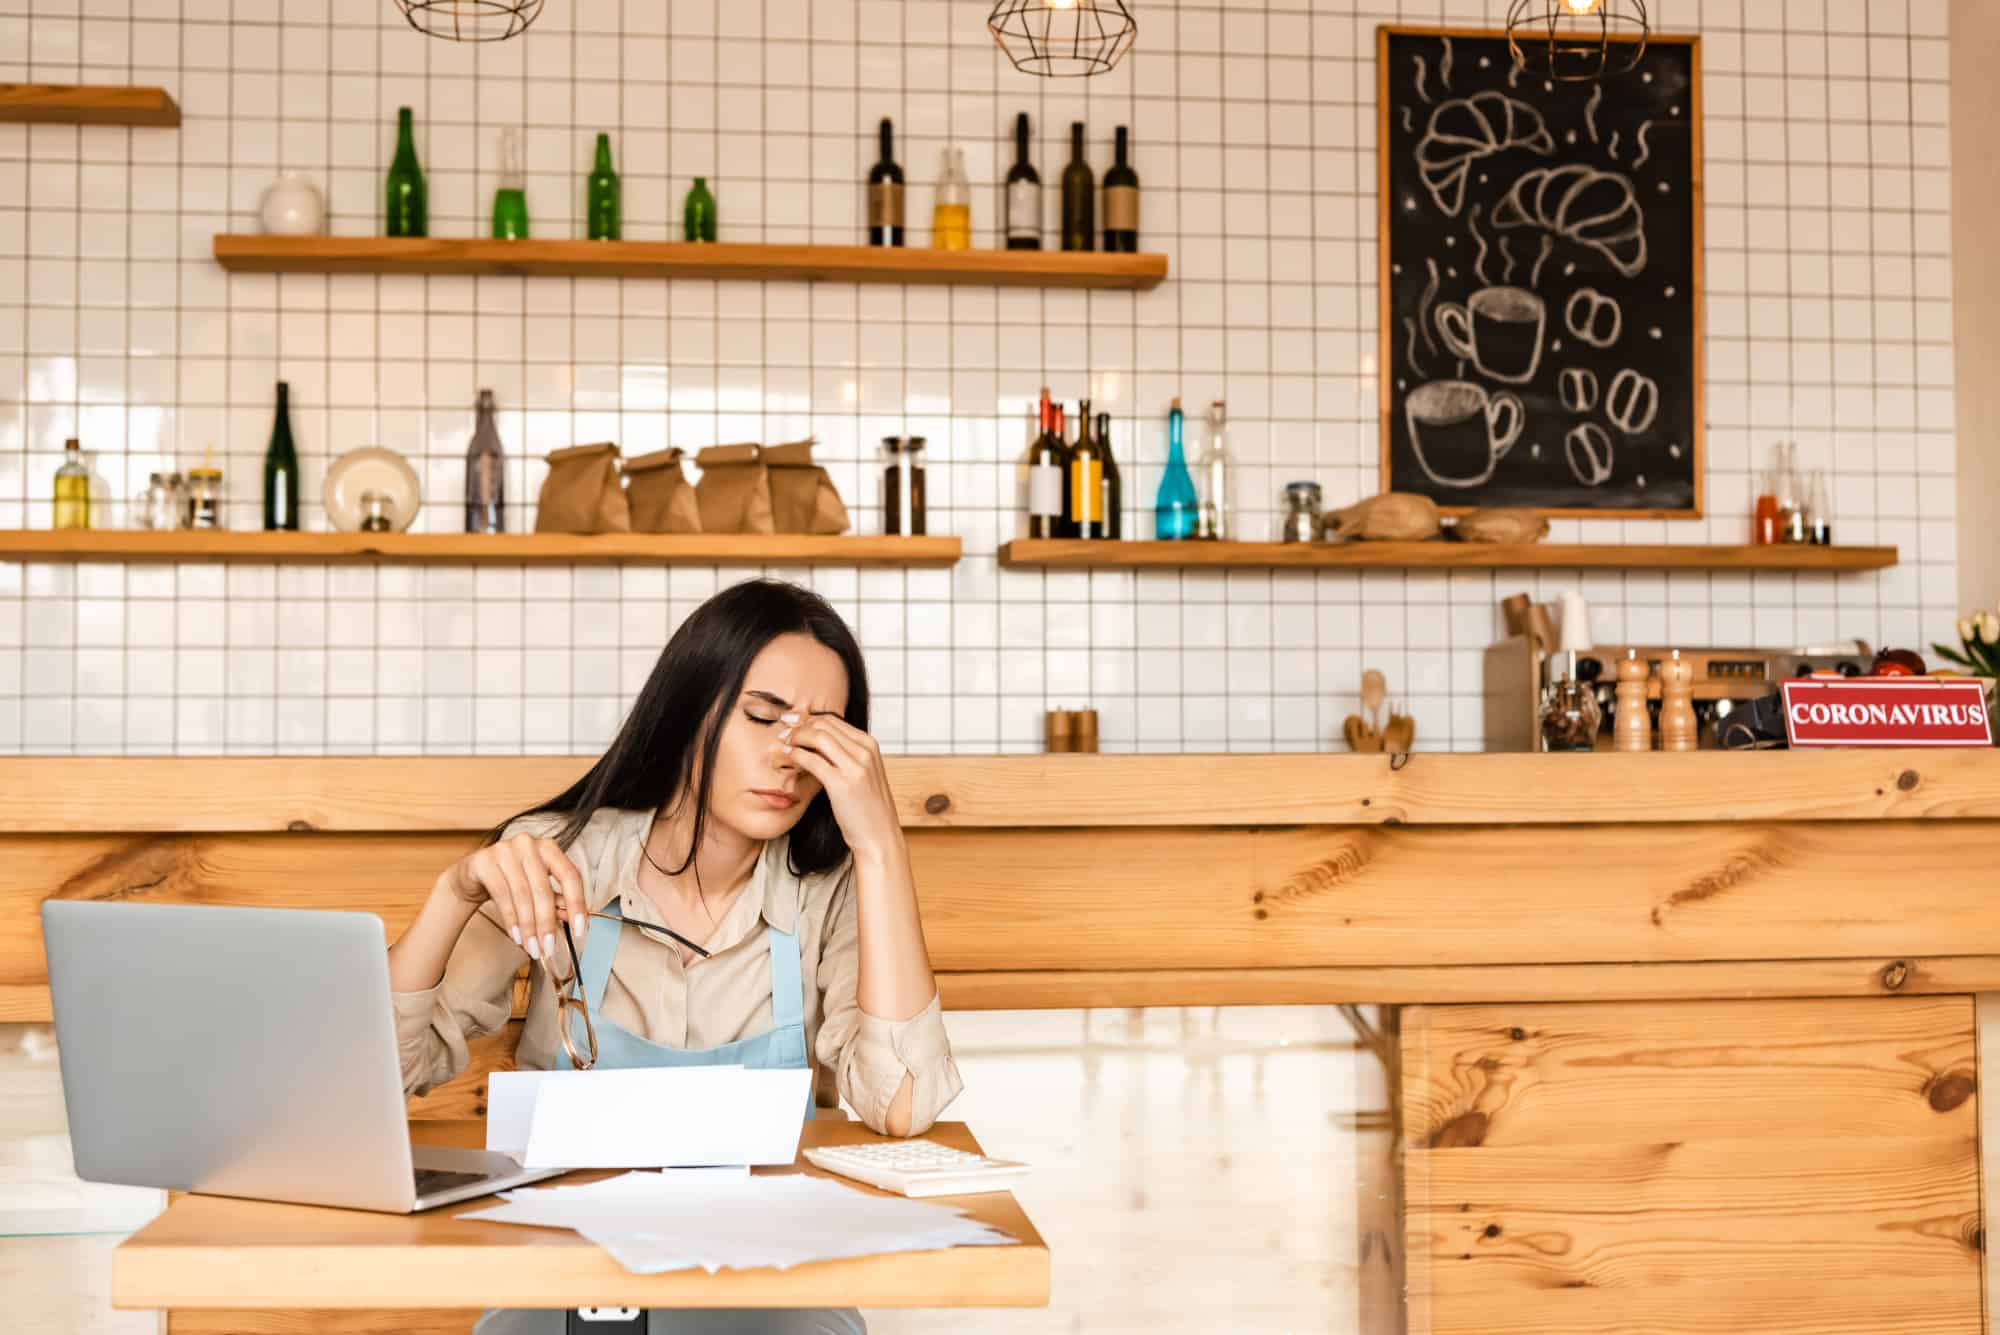 Exhausted female business owner doing closing work for her café.